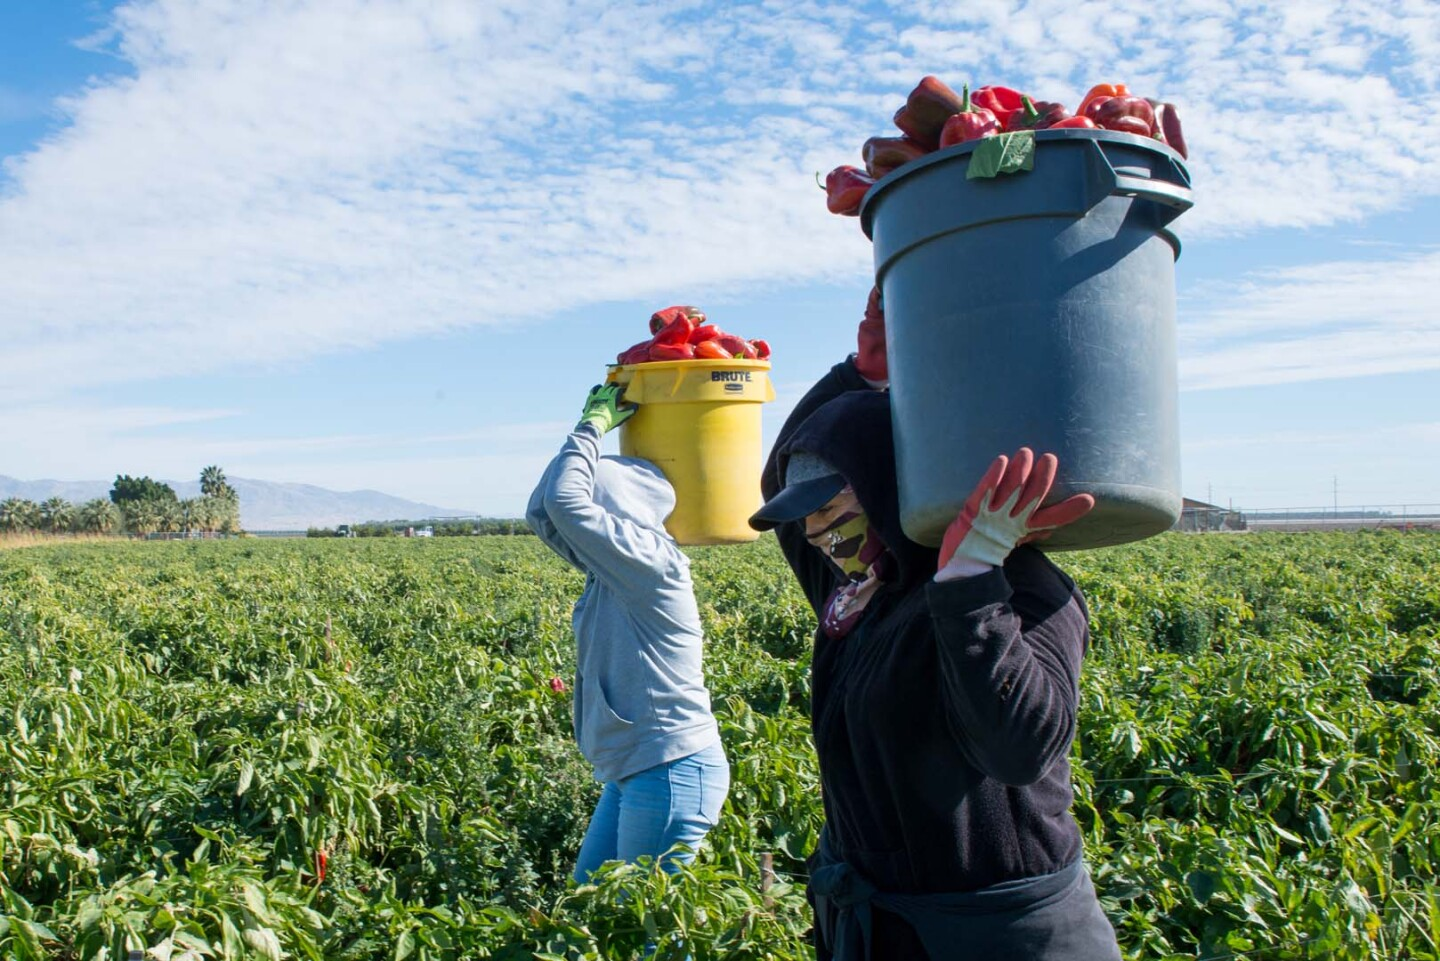 After the vaccine presentation, the farmworkers returned to the fields. They often work closely together, making physical distancing impossible.